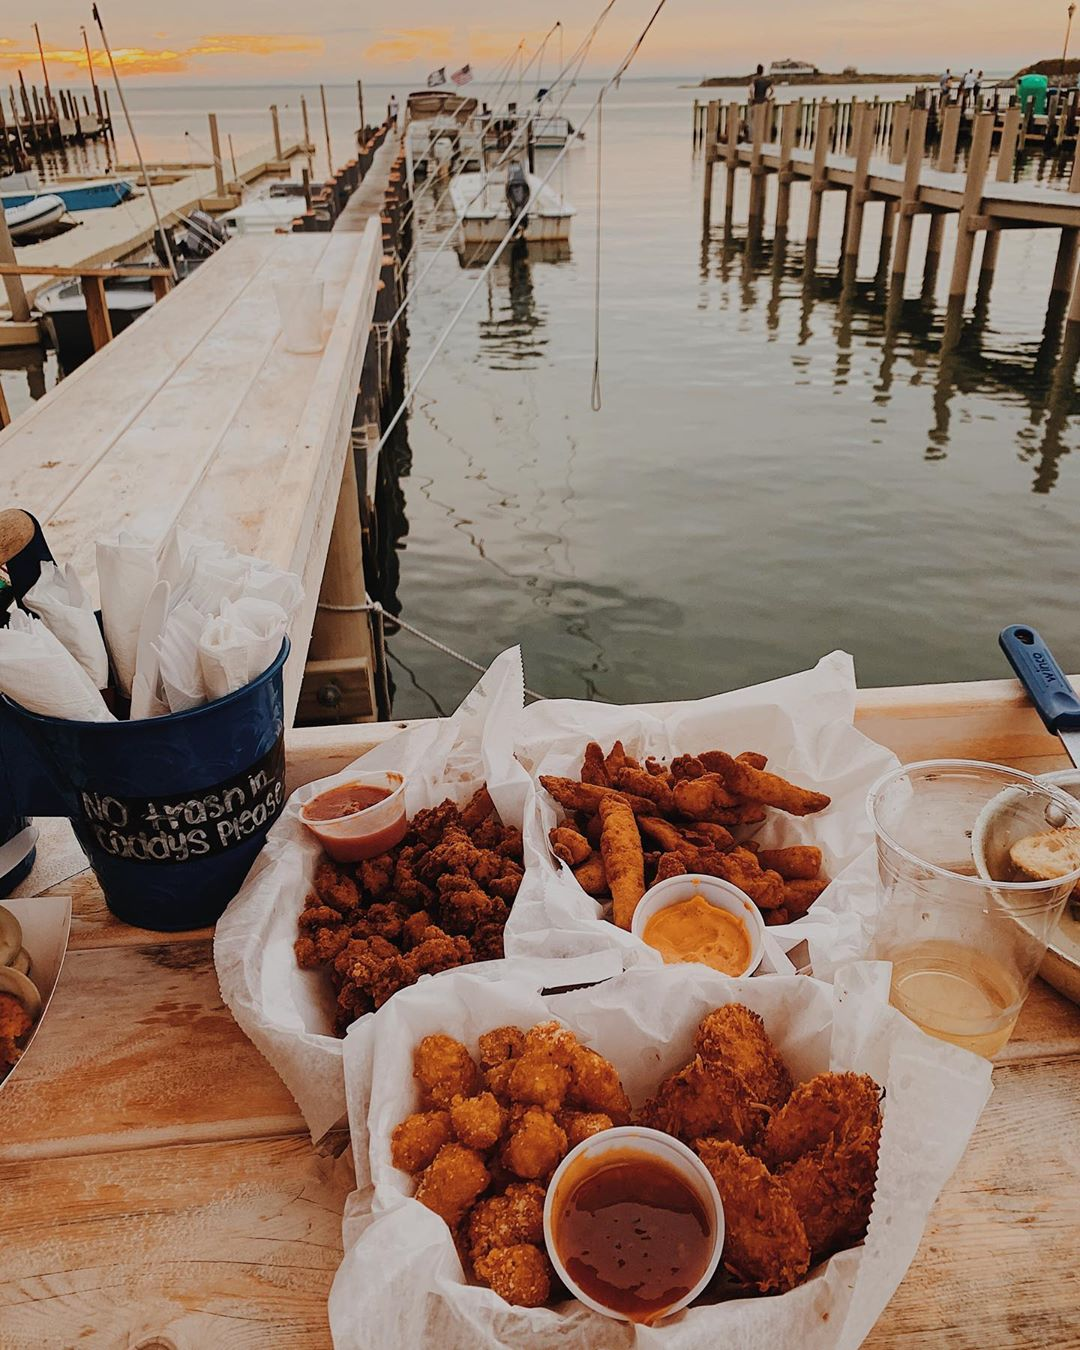 LBI @pollysdock the other night was an absolute dream !! all my favorite fried foods…